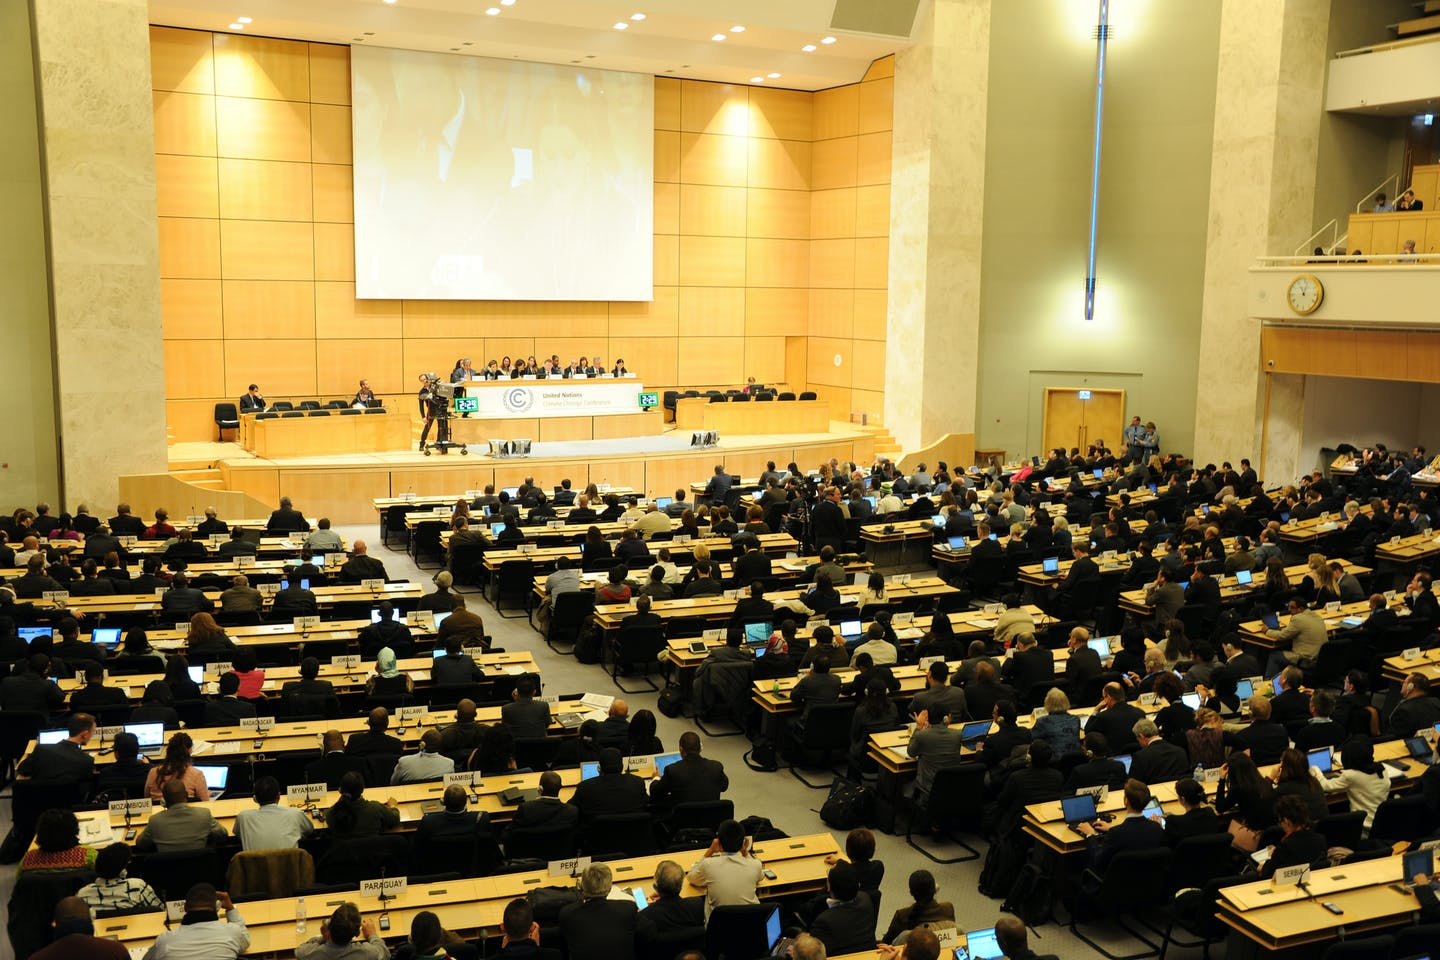 Geneva climate conference opening plenary